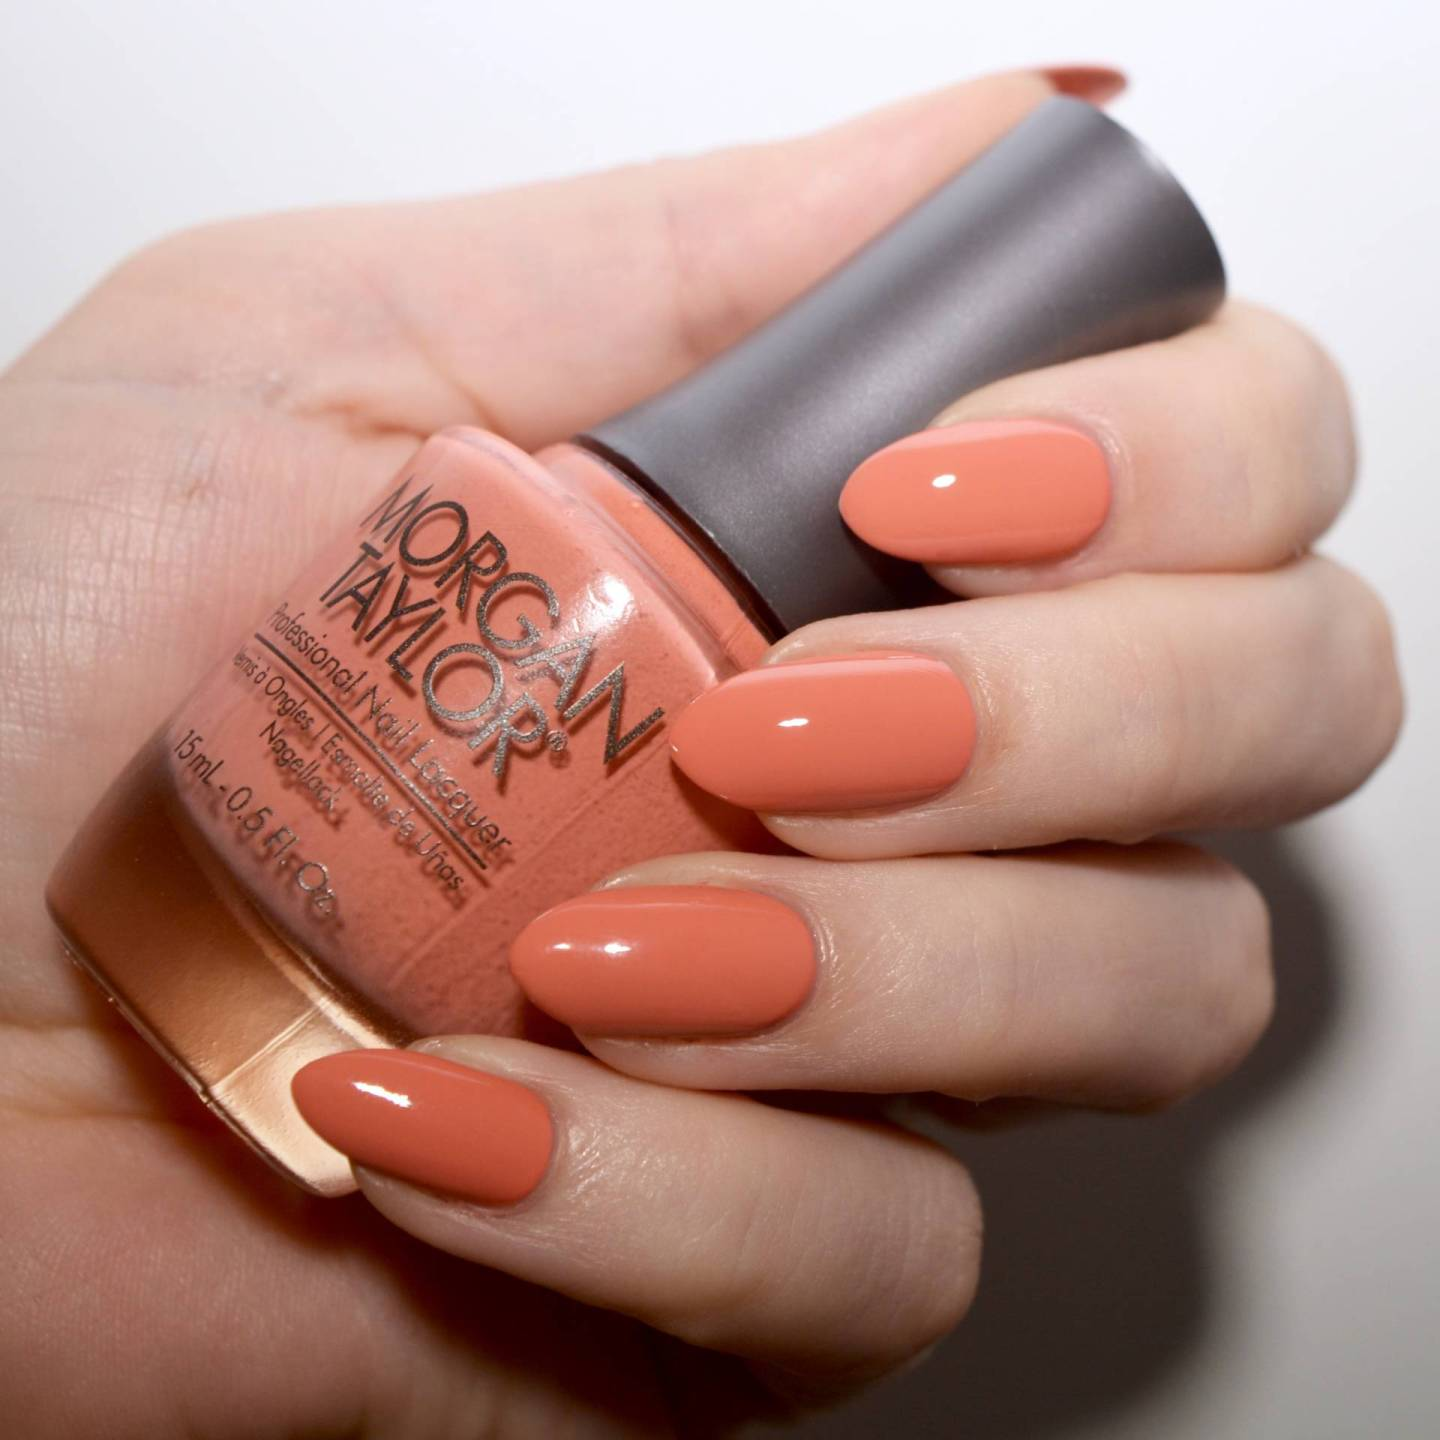 Morgan Taylor Perfect Landing - a muted coral that is an alternative to the bright spring pastels.